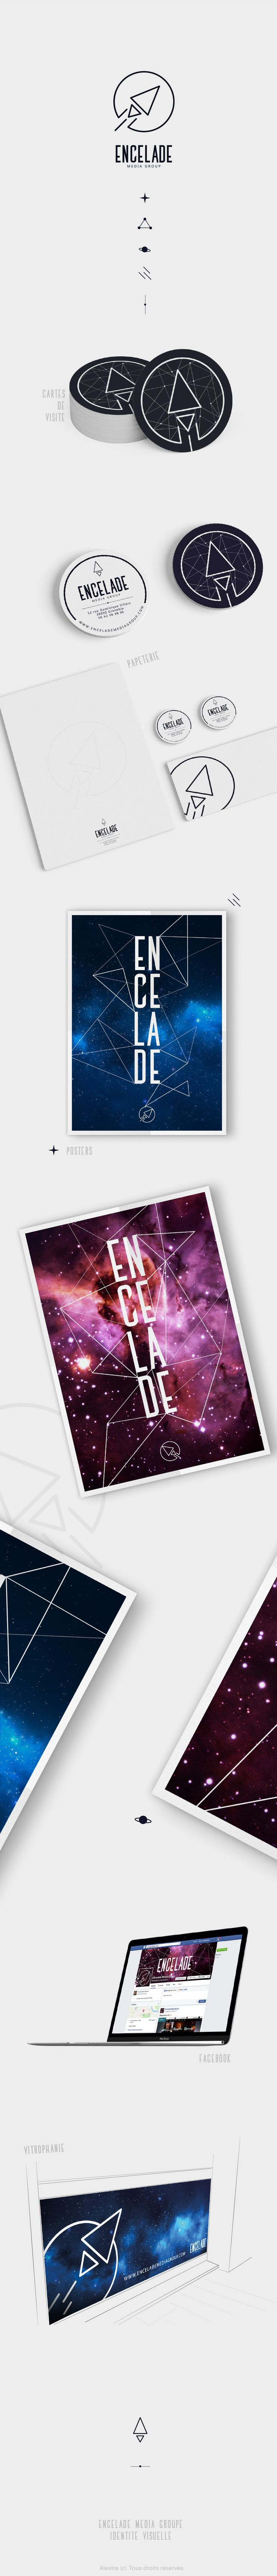 Encelade Media Group | Alextra Visual Identity - Graphisme - Designer - Design…